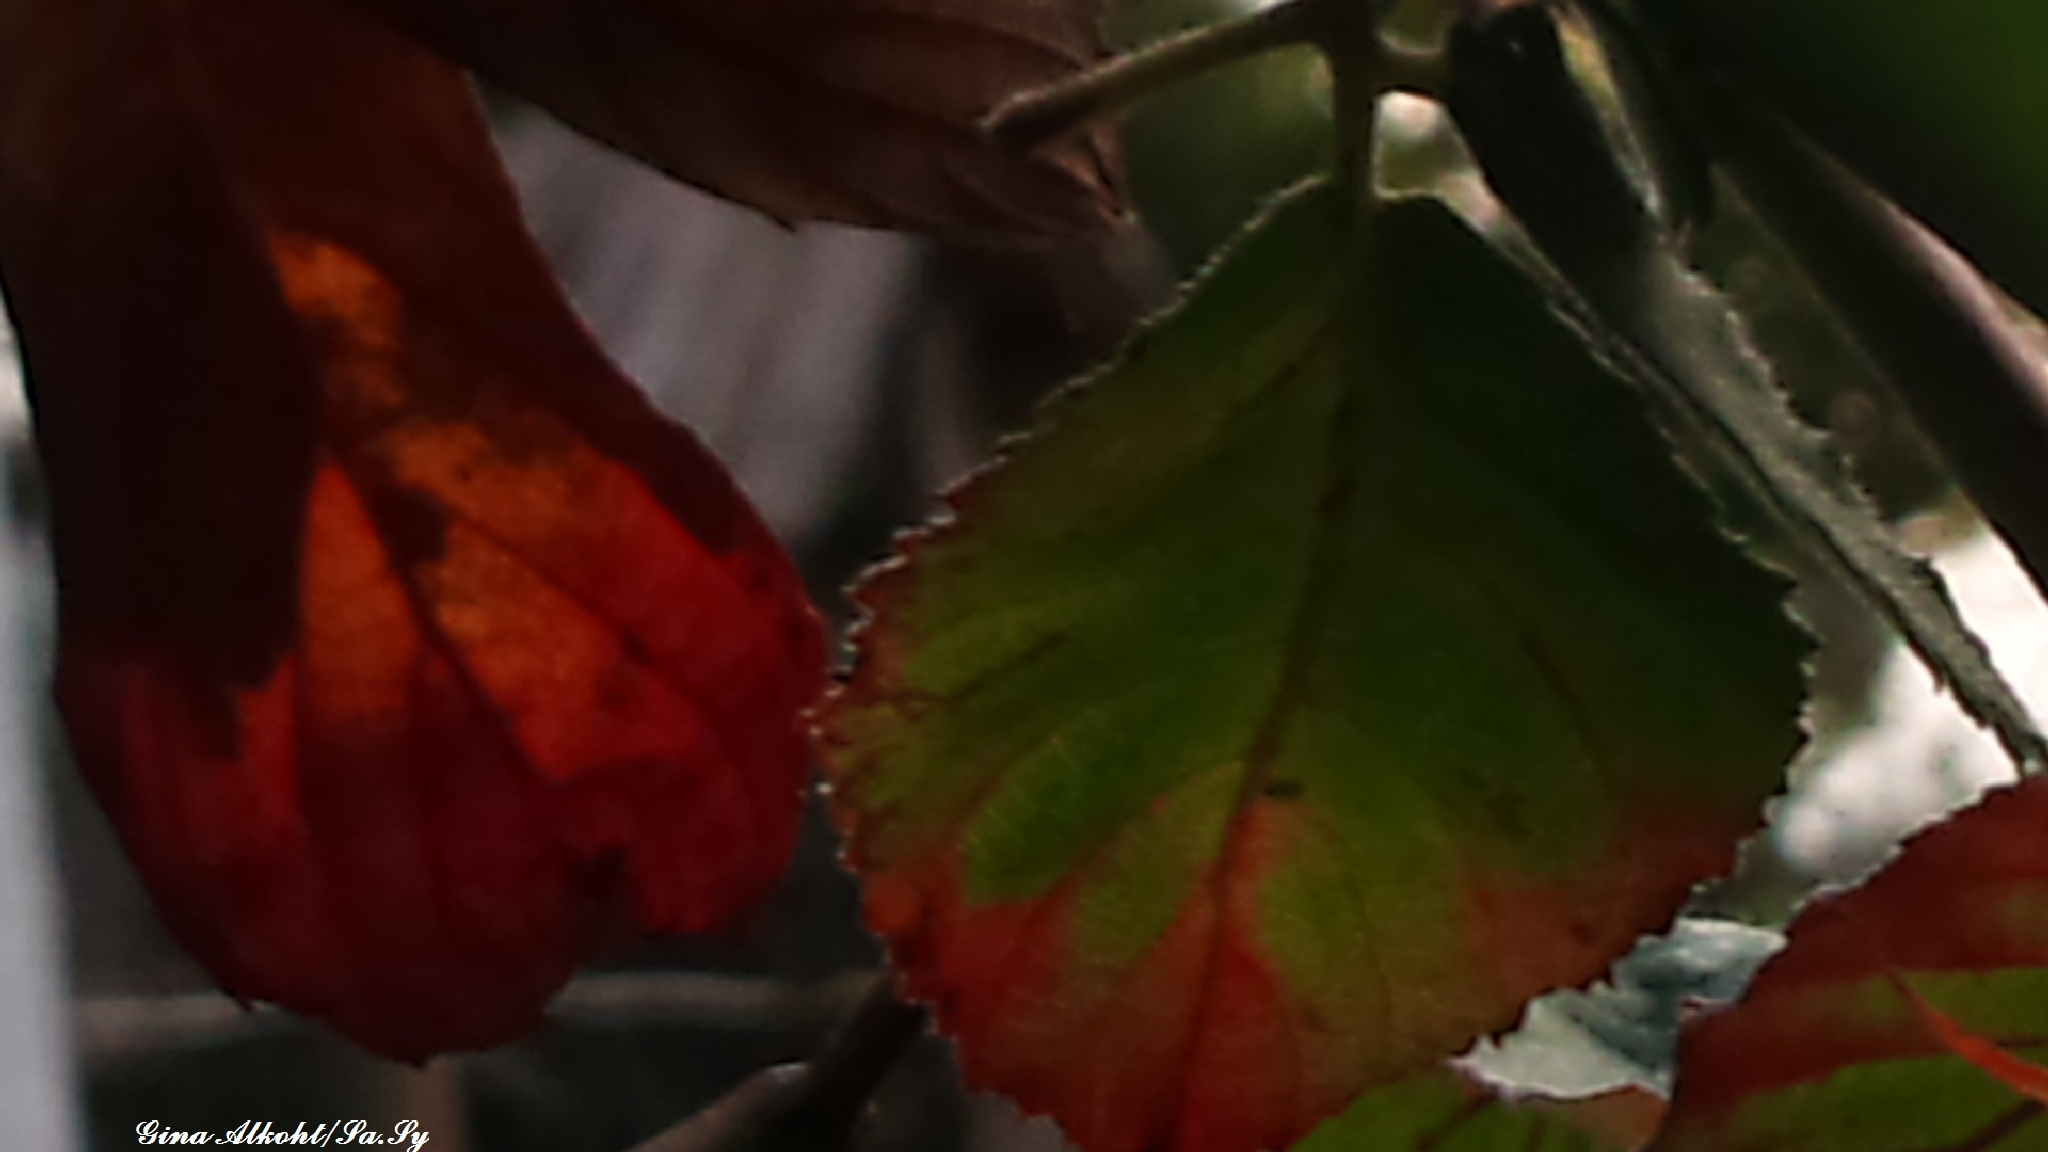 Autumn leaves by Gina Alkoht